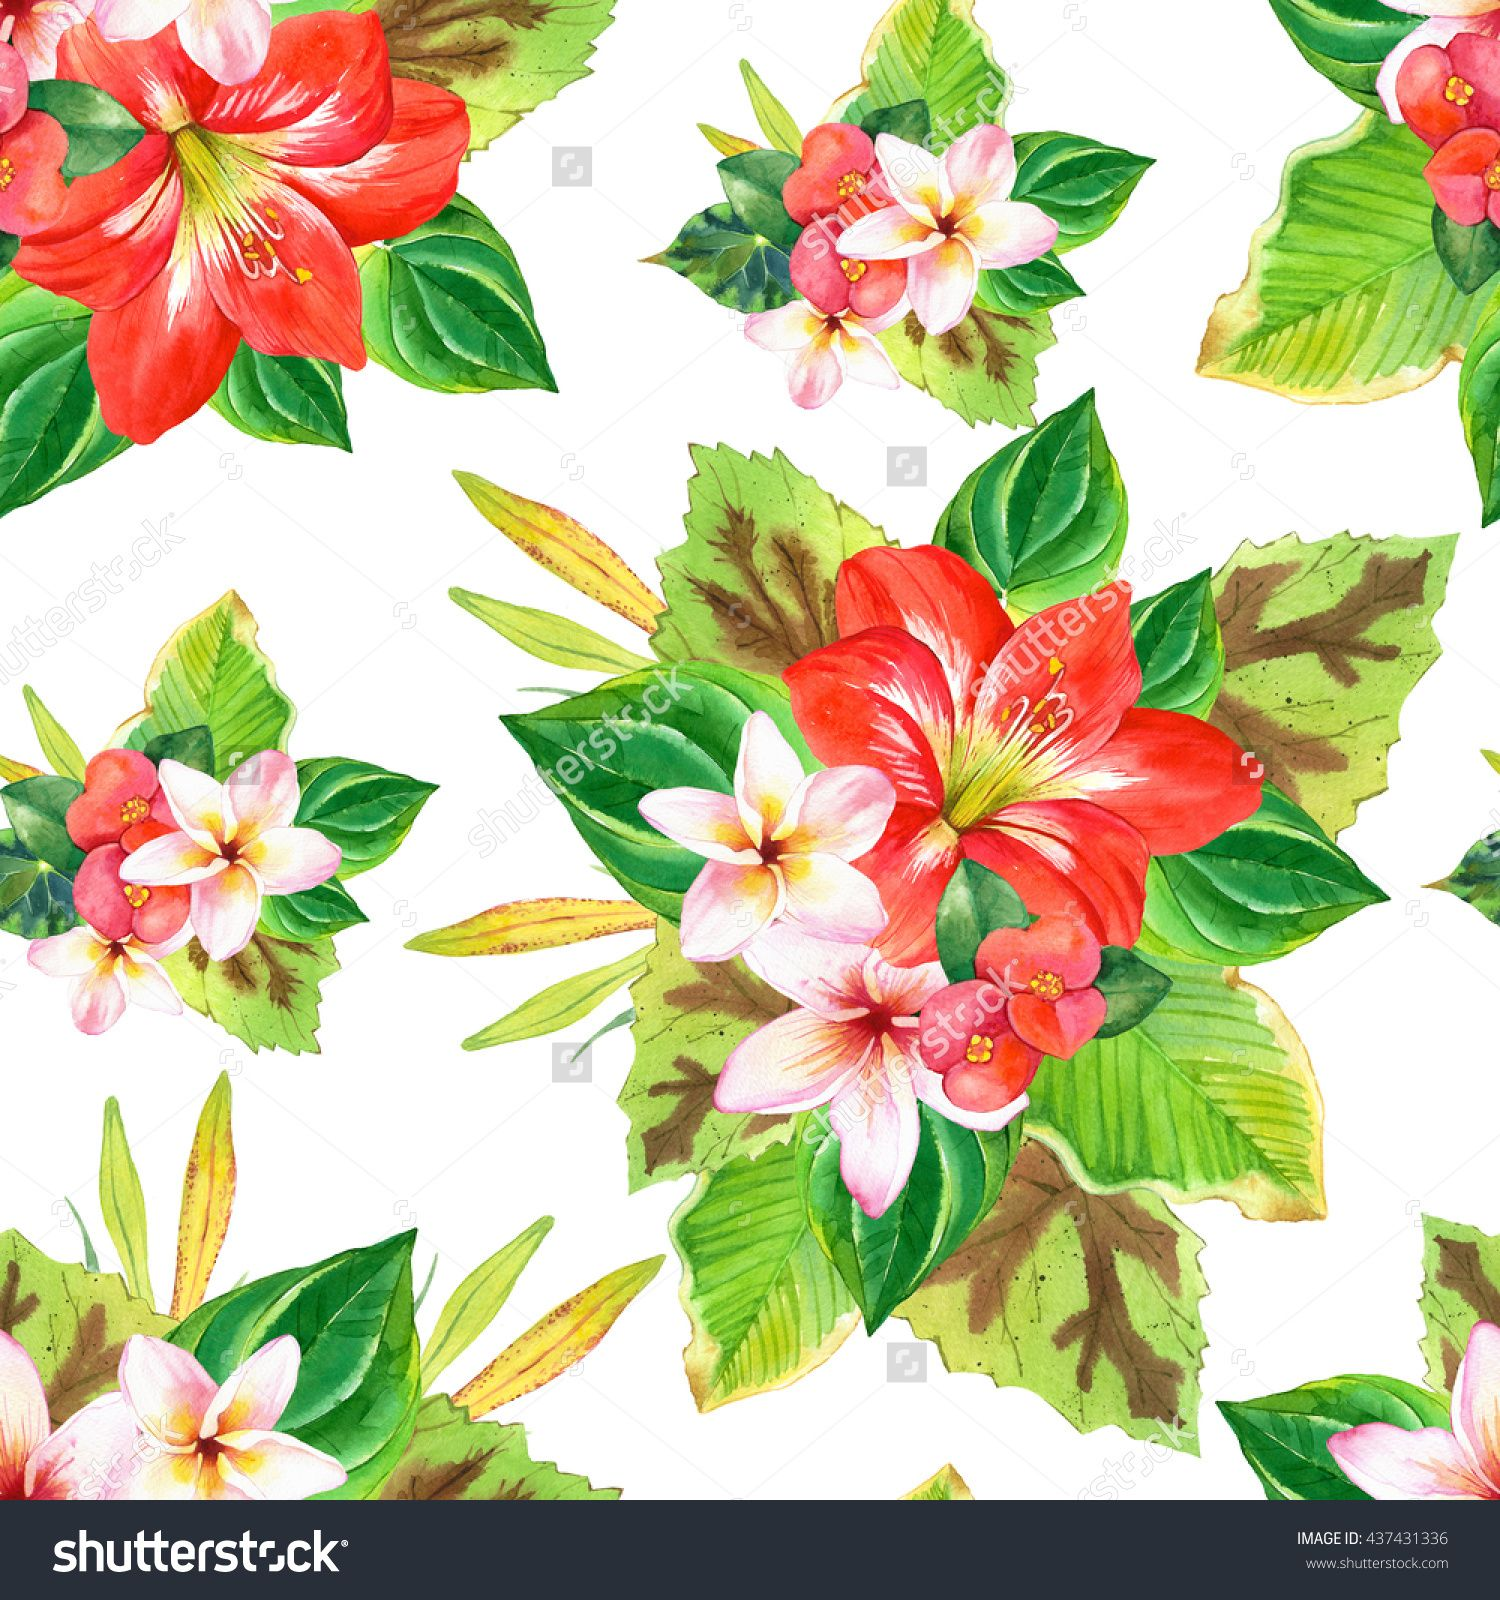 Seamless Pattern With Watercolor Tropical Flowers And Plants On